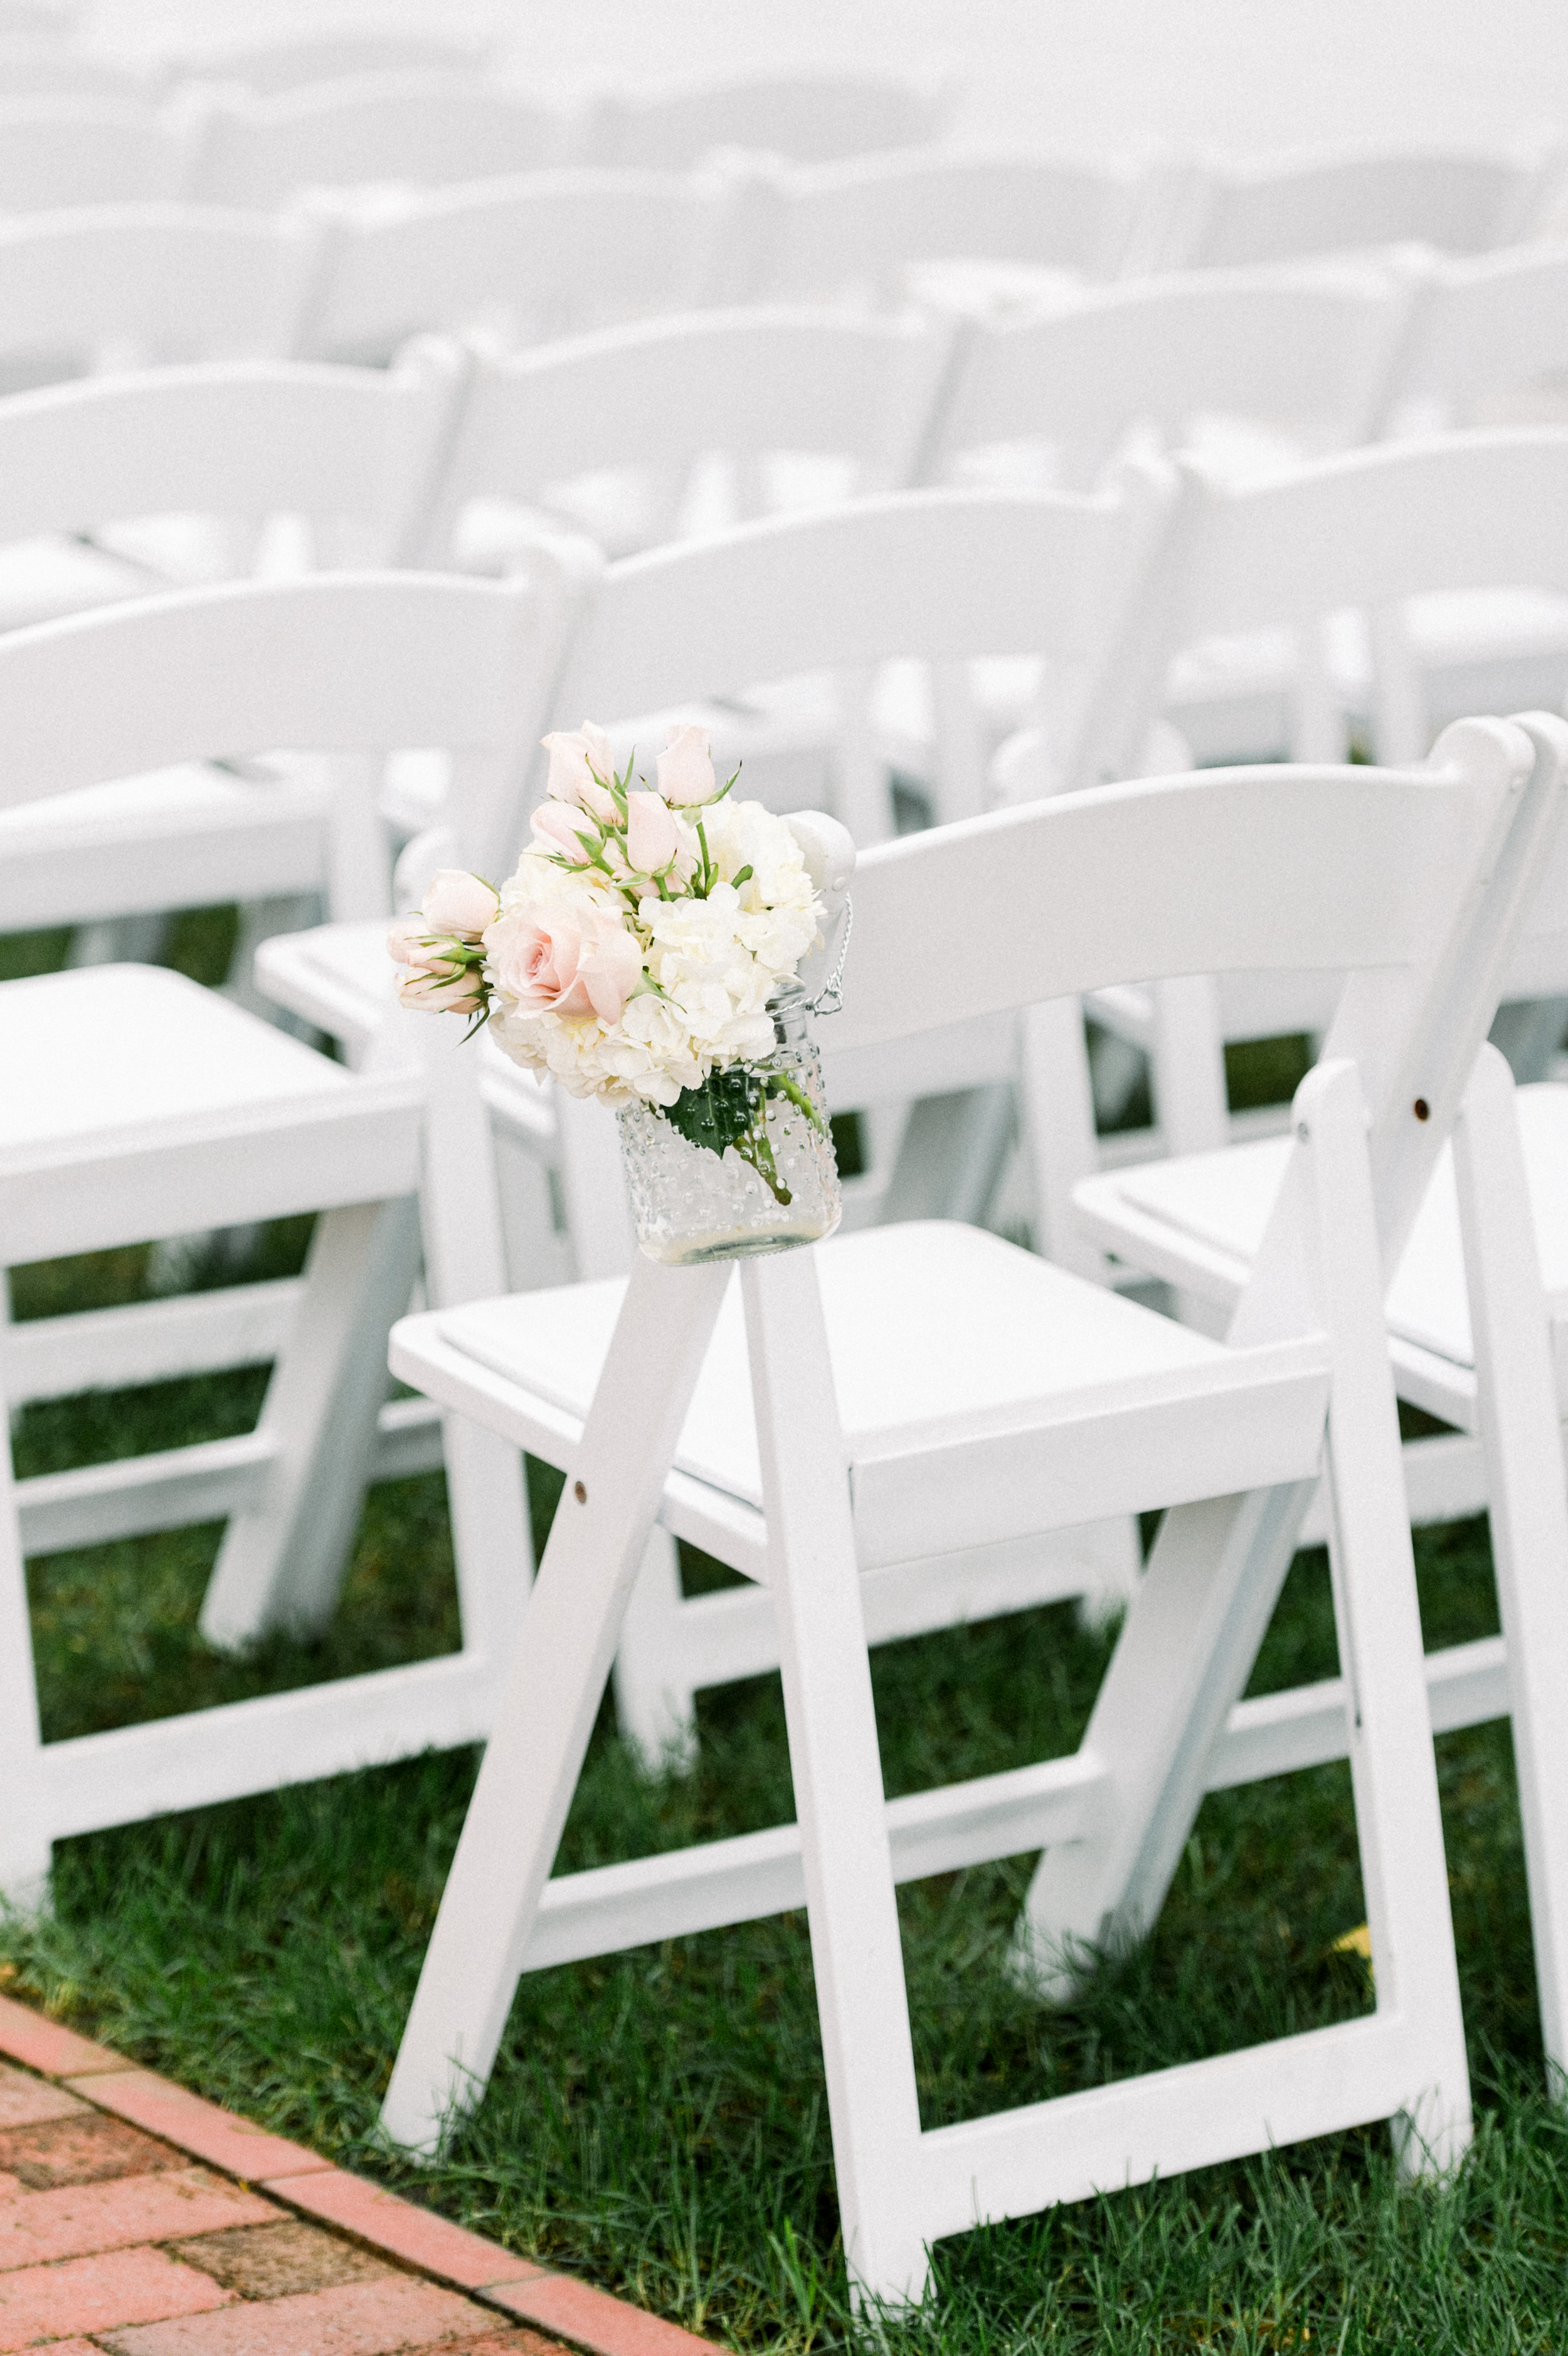 The Commons 1854 Topsfield MA wedding | Massachusetts wedding venue | Massachusetts wedding photography | outdoor wedding ceremony | white ceremony chairs | ceremony flowers | ceremony inspiration |